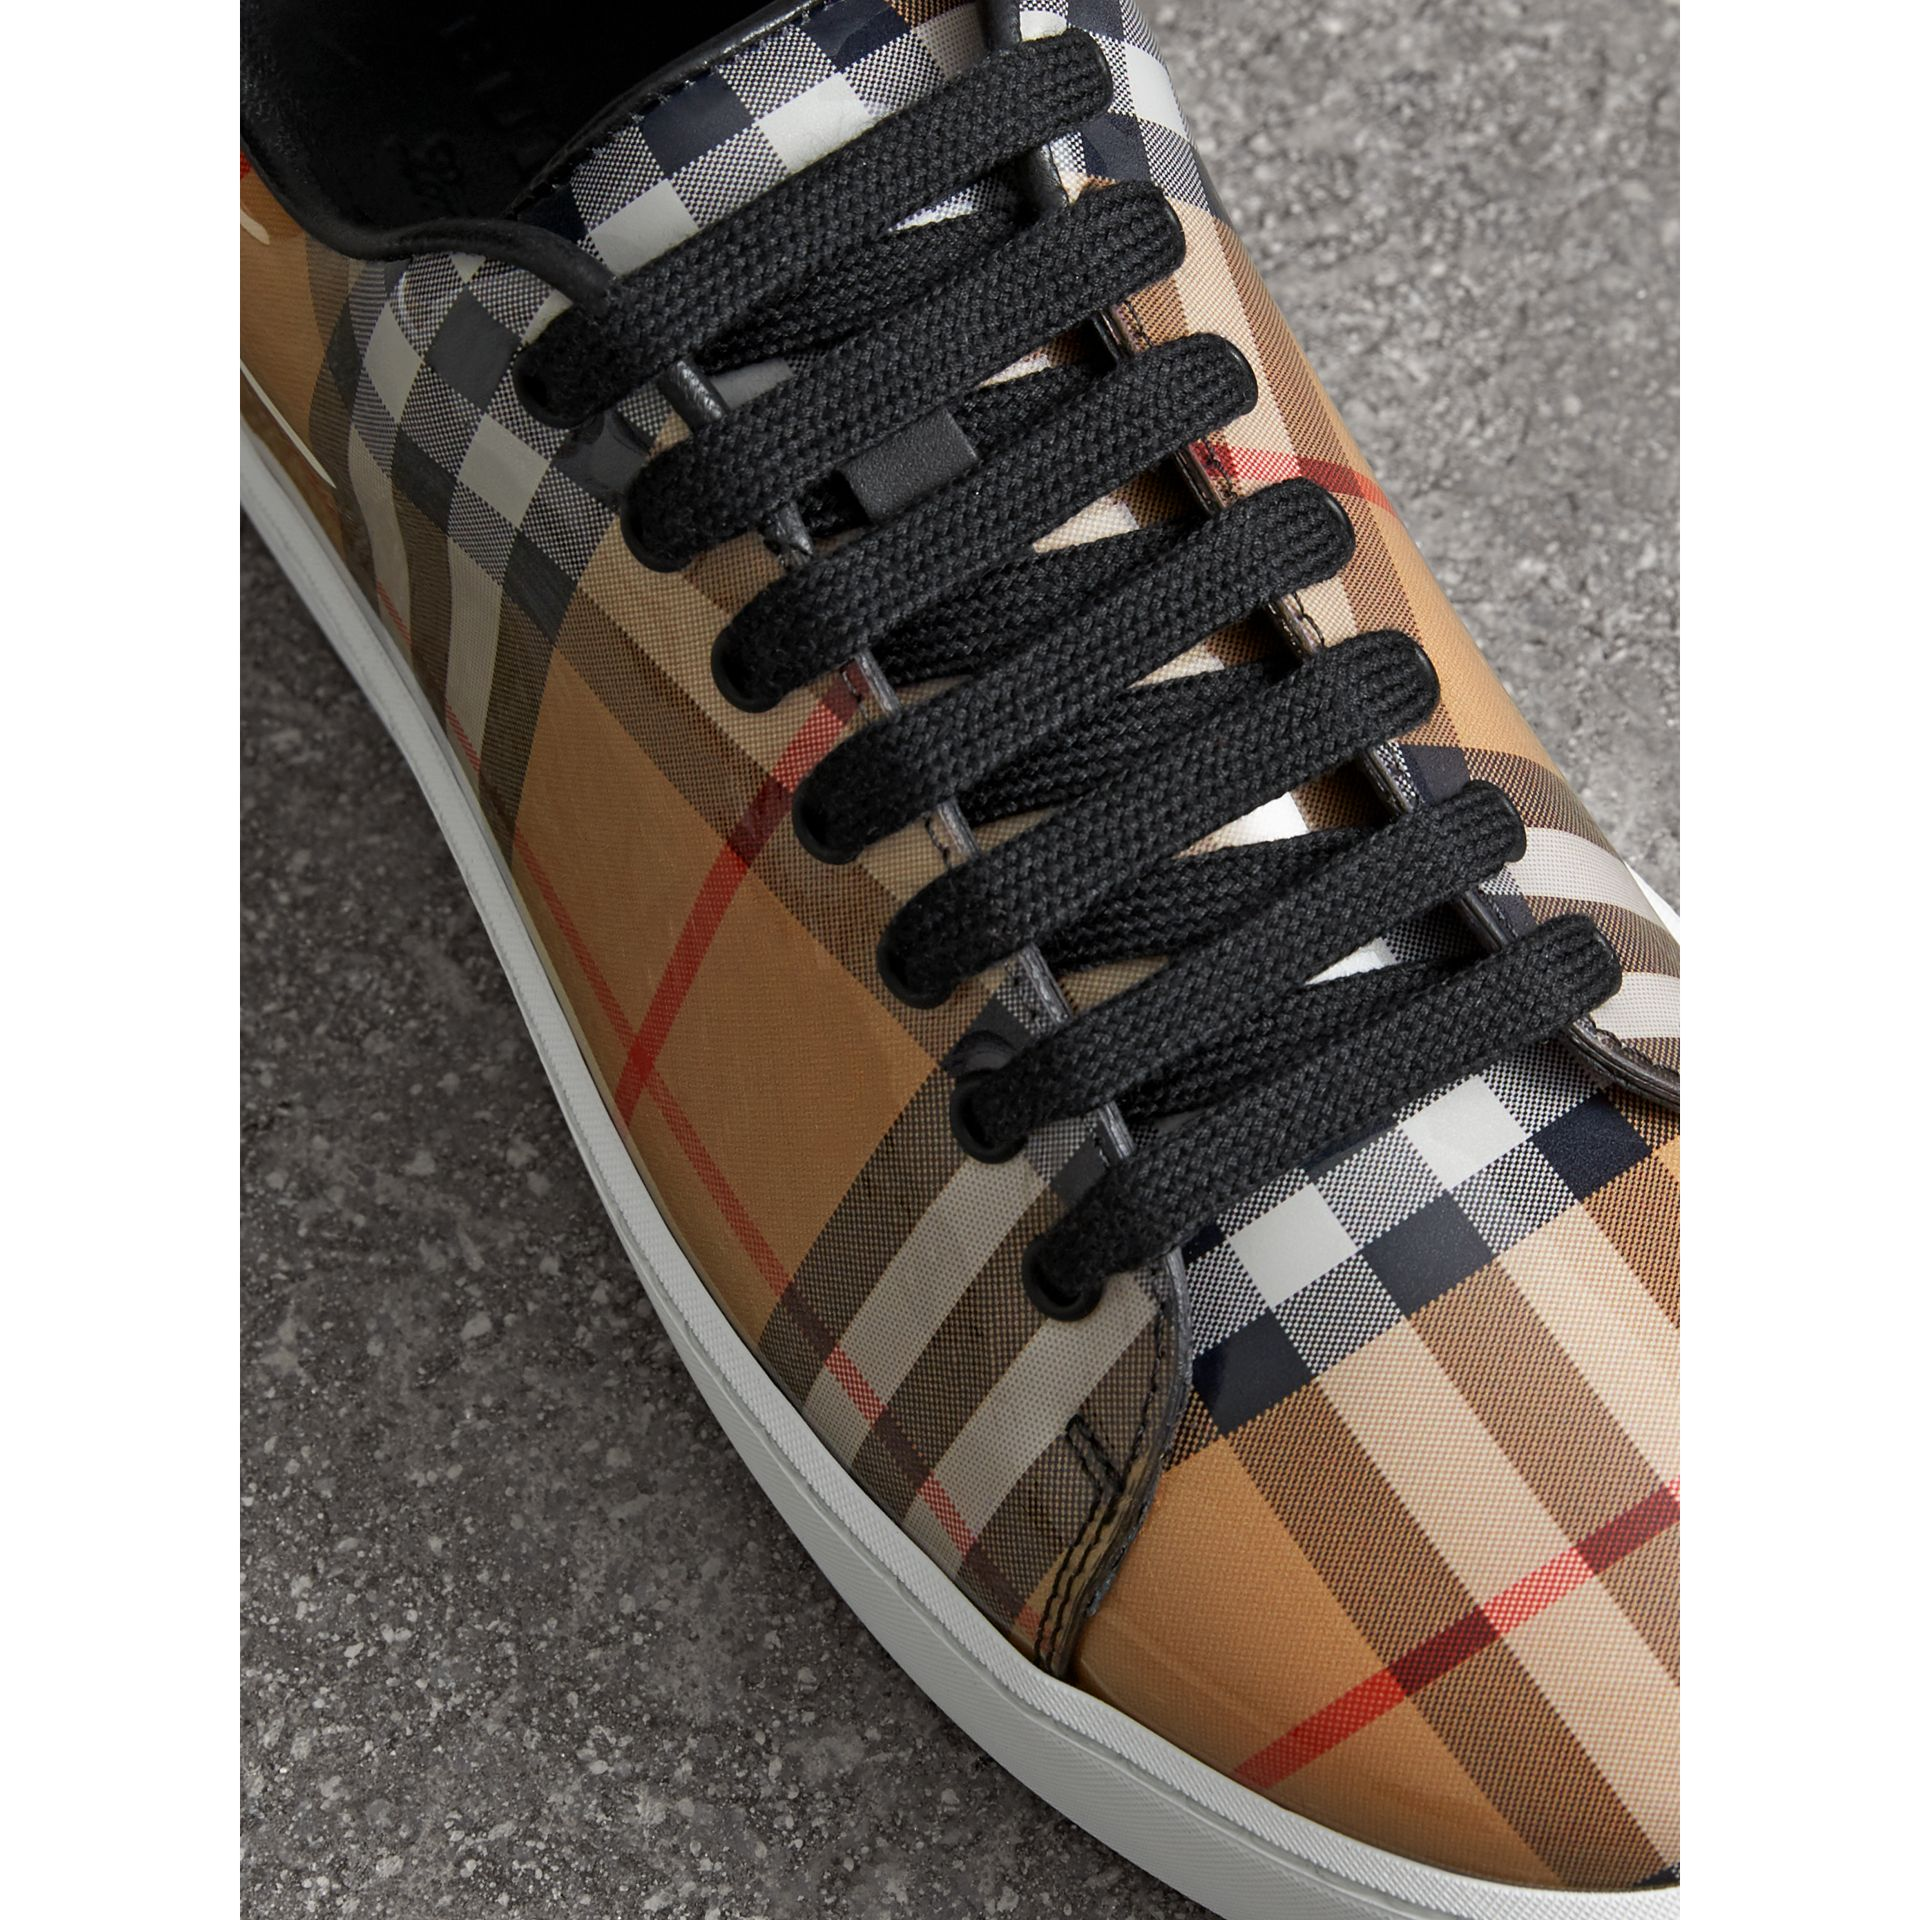 Sneakers en cuir et à motif Vintage check (Jaune Antique) - Femme | Burberry - photo de la galerie 1